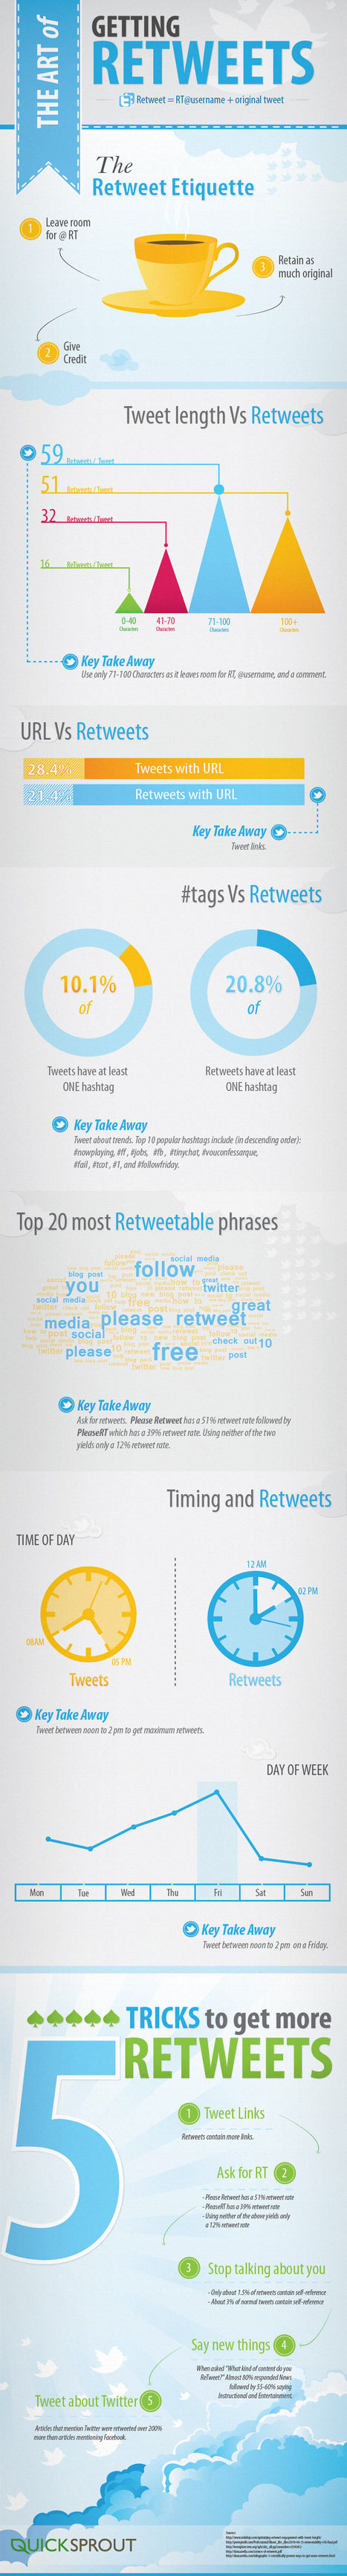 Top Tips and Tricks to Getting More Retweets: | Online Marketing with Tech | Scoop.it